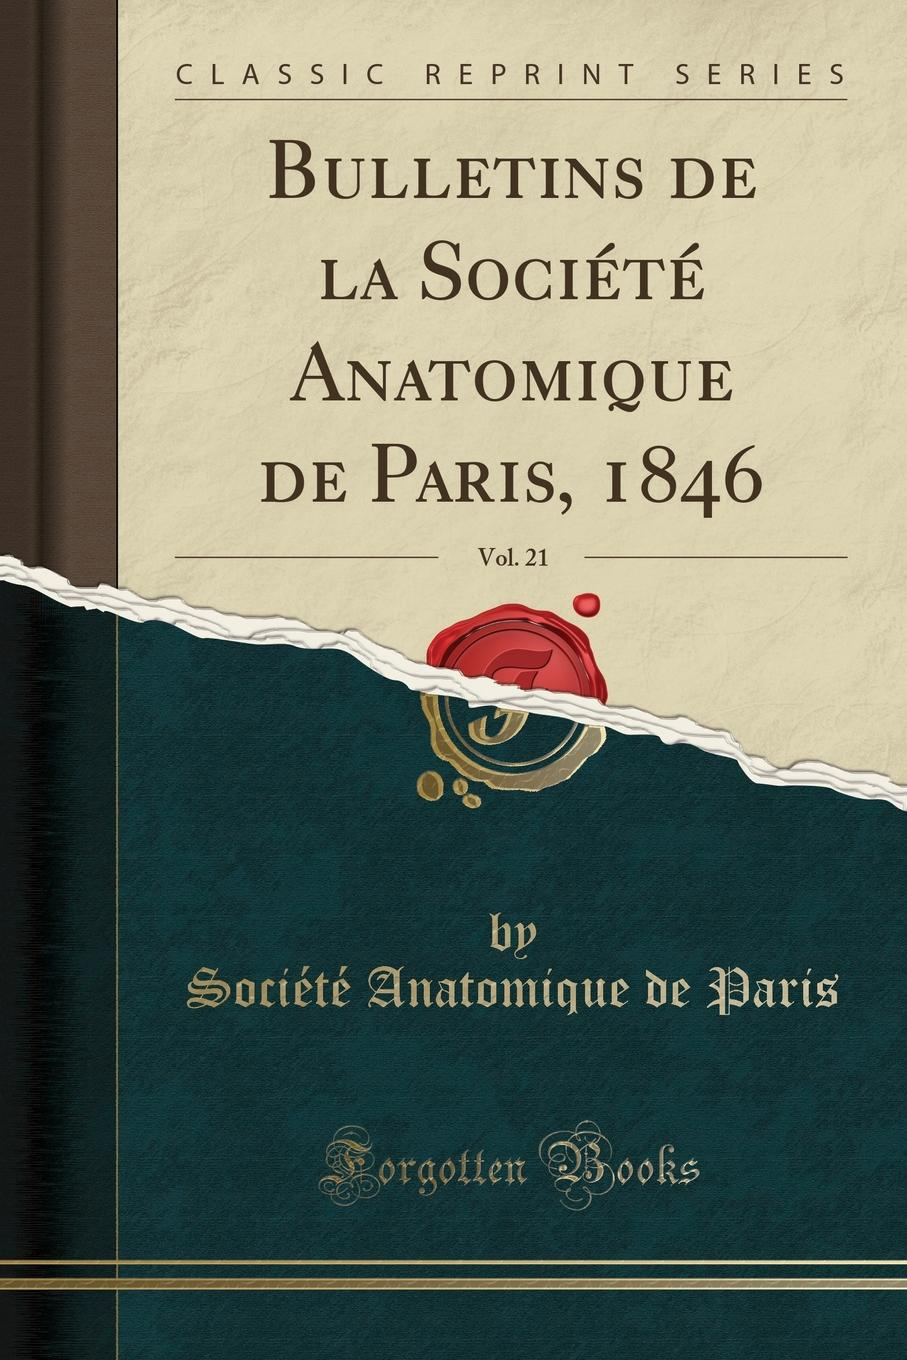 Société Anatomique de Paris Bulletins de la Societe Anatomique de Paris, 1846, Vol. 21 (Classic Reprint)